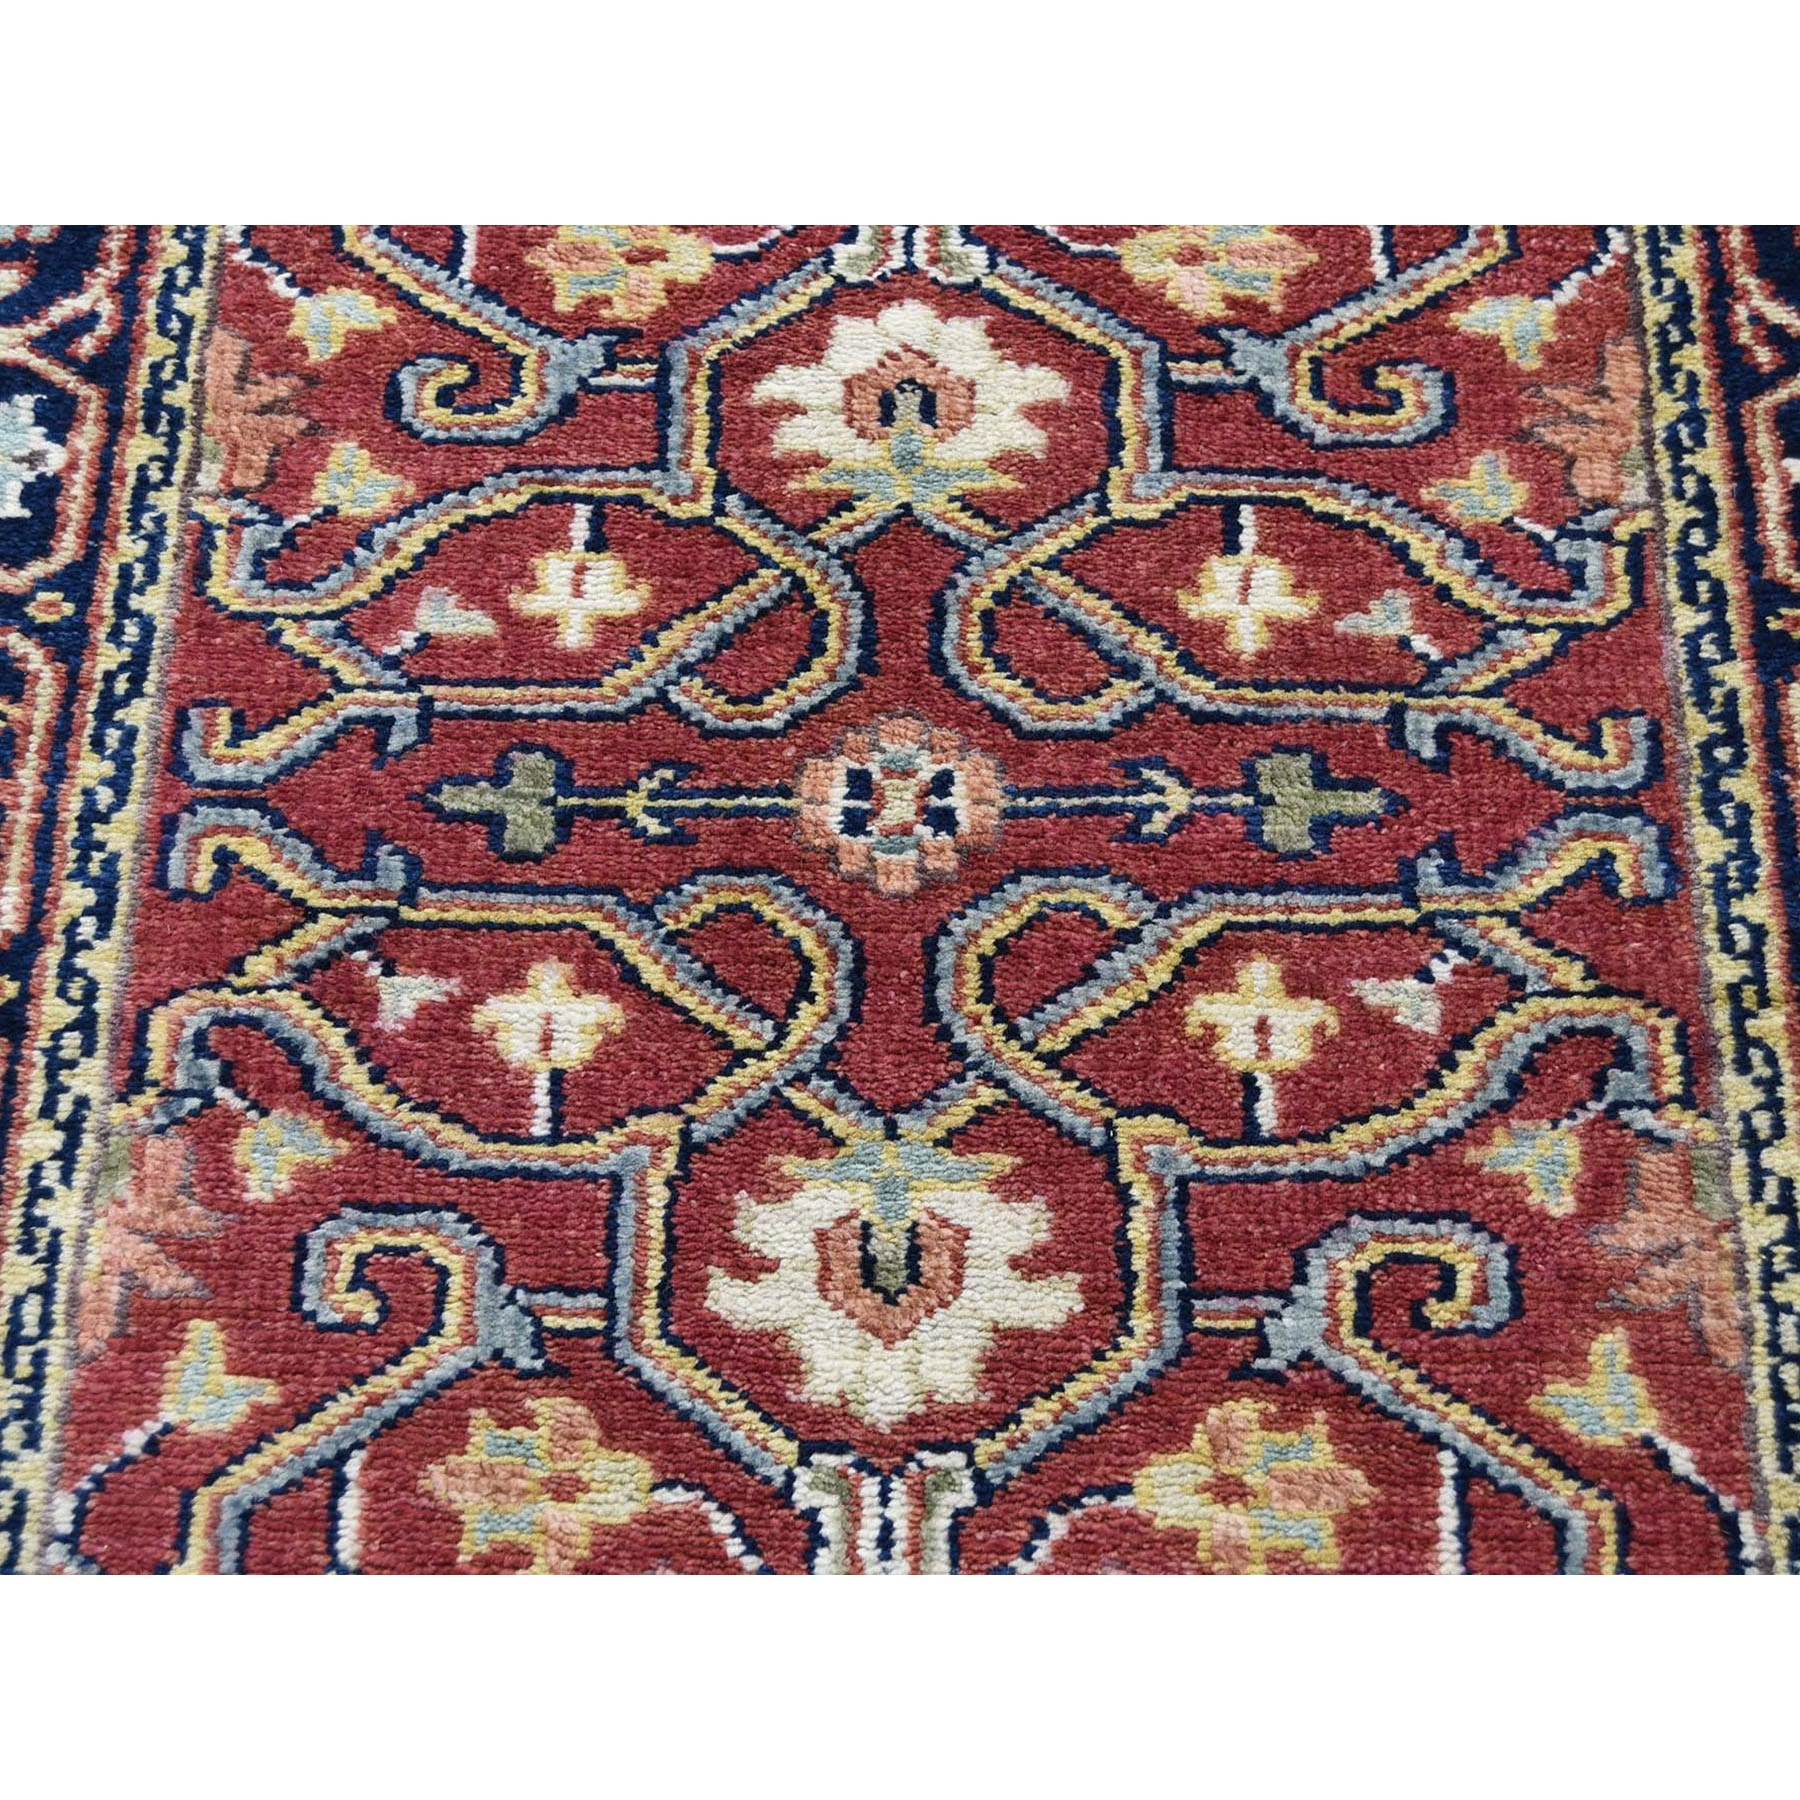 "2'4""x11'8"" Red Heriz Revival Pure Wool Hand-Knotted Oriental Runner Rug"